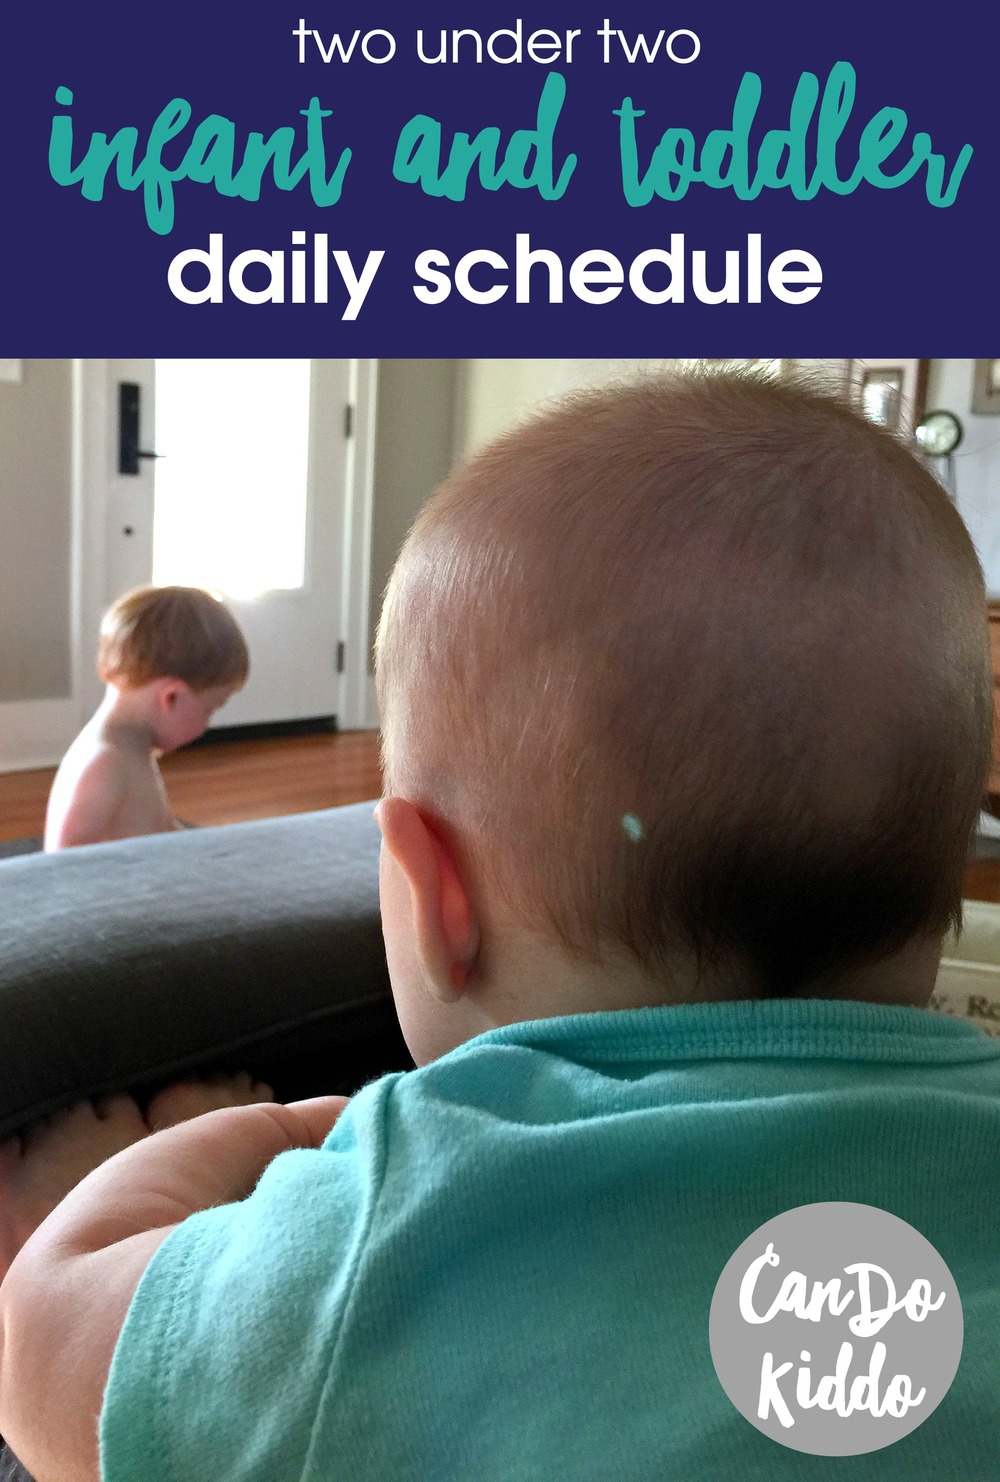 Baby and Toddler Daily Schedule. www.CanDoKiddo.com